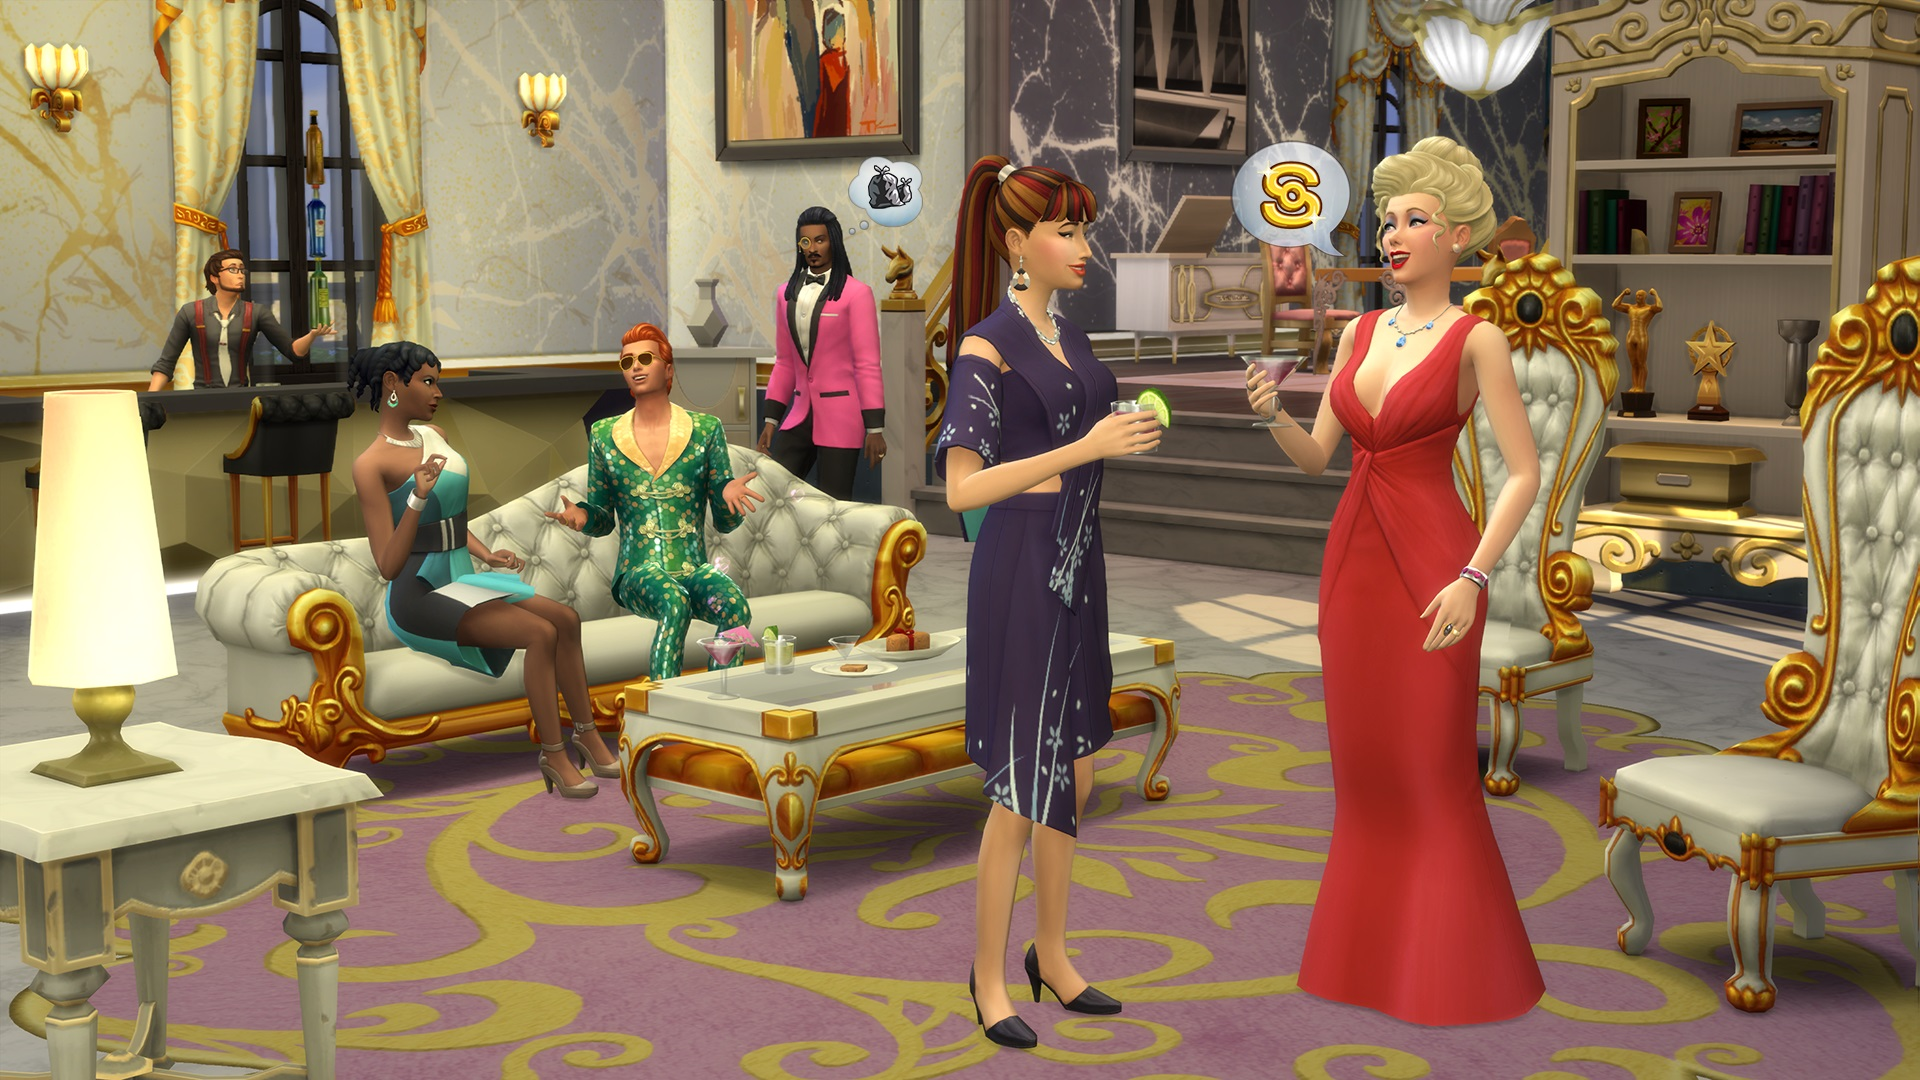 The Sims 4 Nuove Stelle Screenshot 2